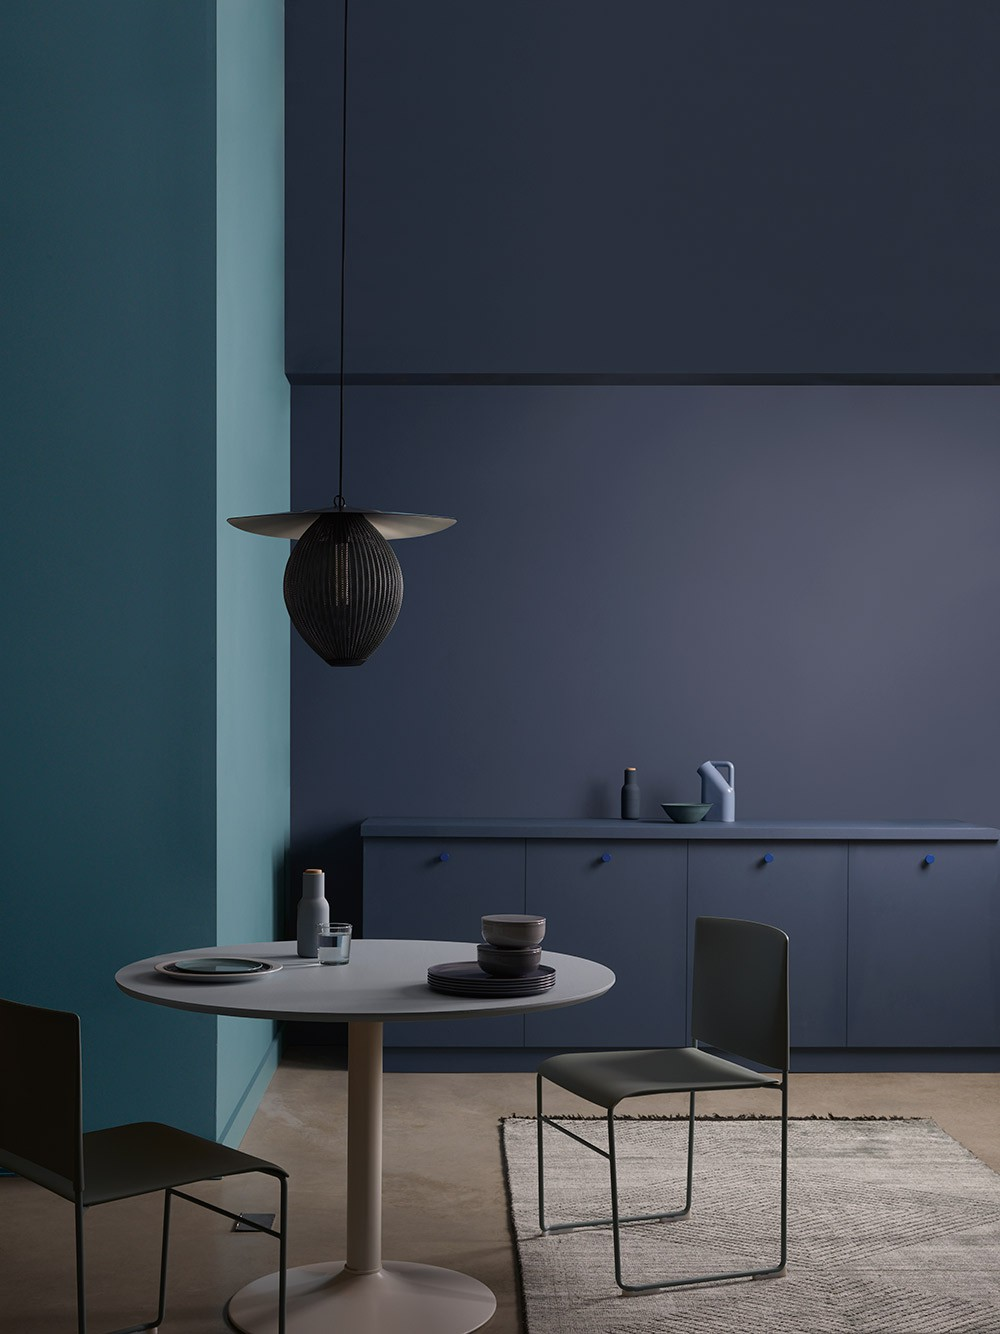 Blue and purple walls with dining table